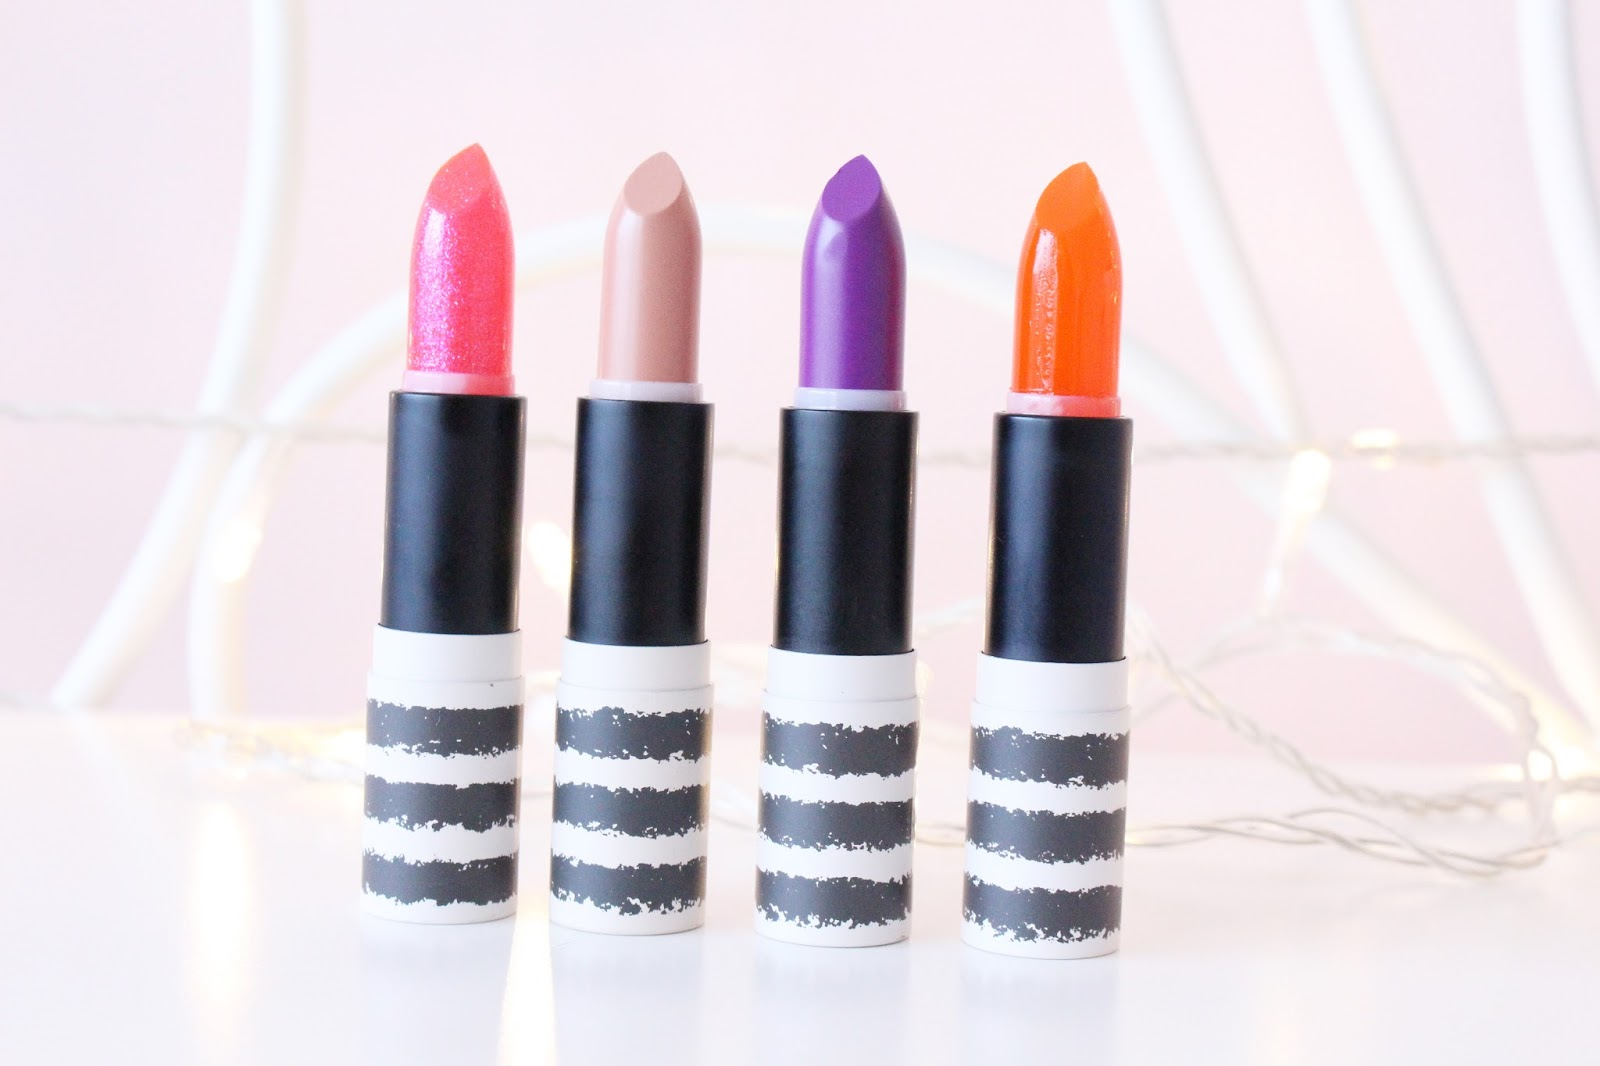 Topshop Lipsticks in Crystal, Nevada, Straight Ace and Jewel